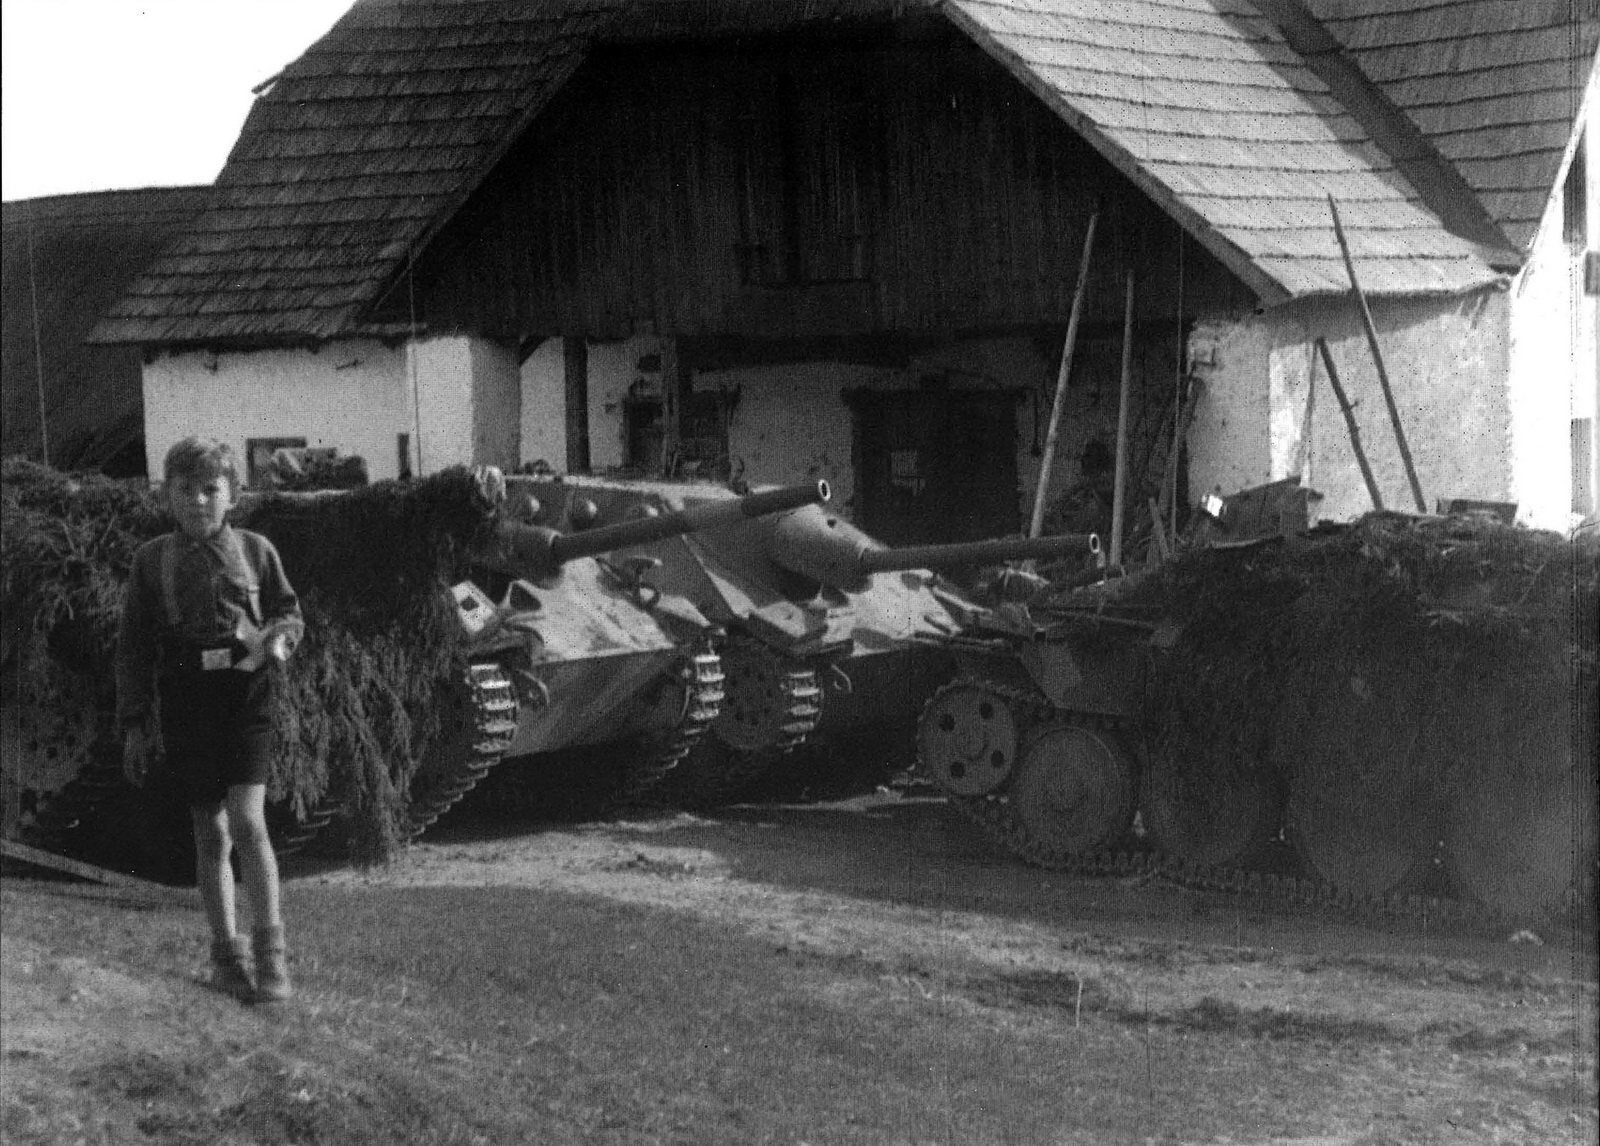 Jagdpanzer 38 captured surrender end of war2.jpg